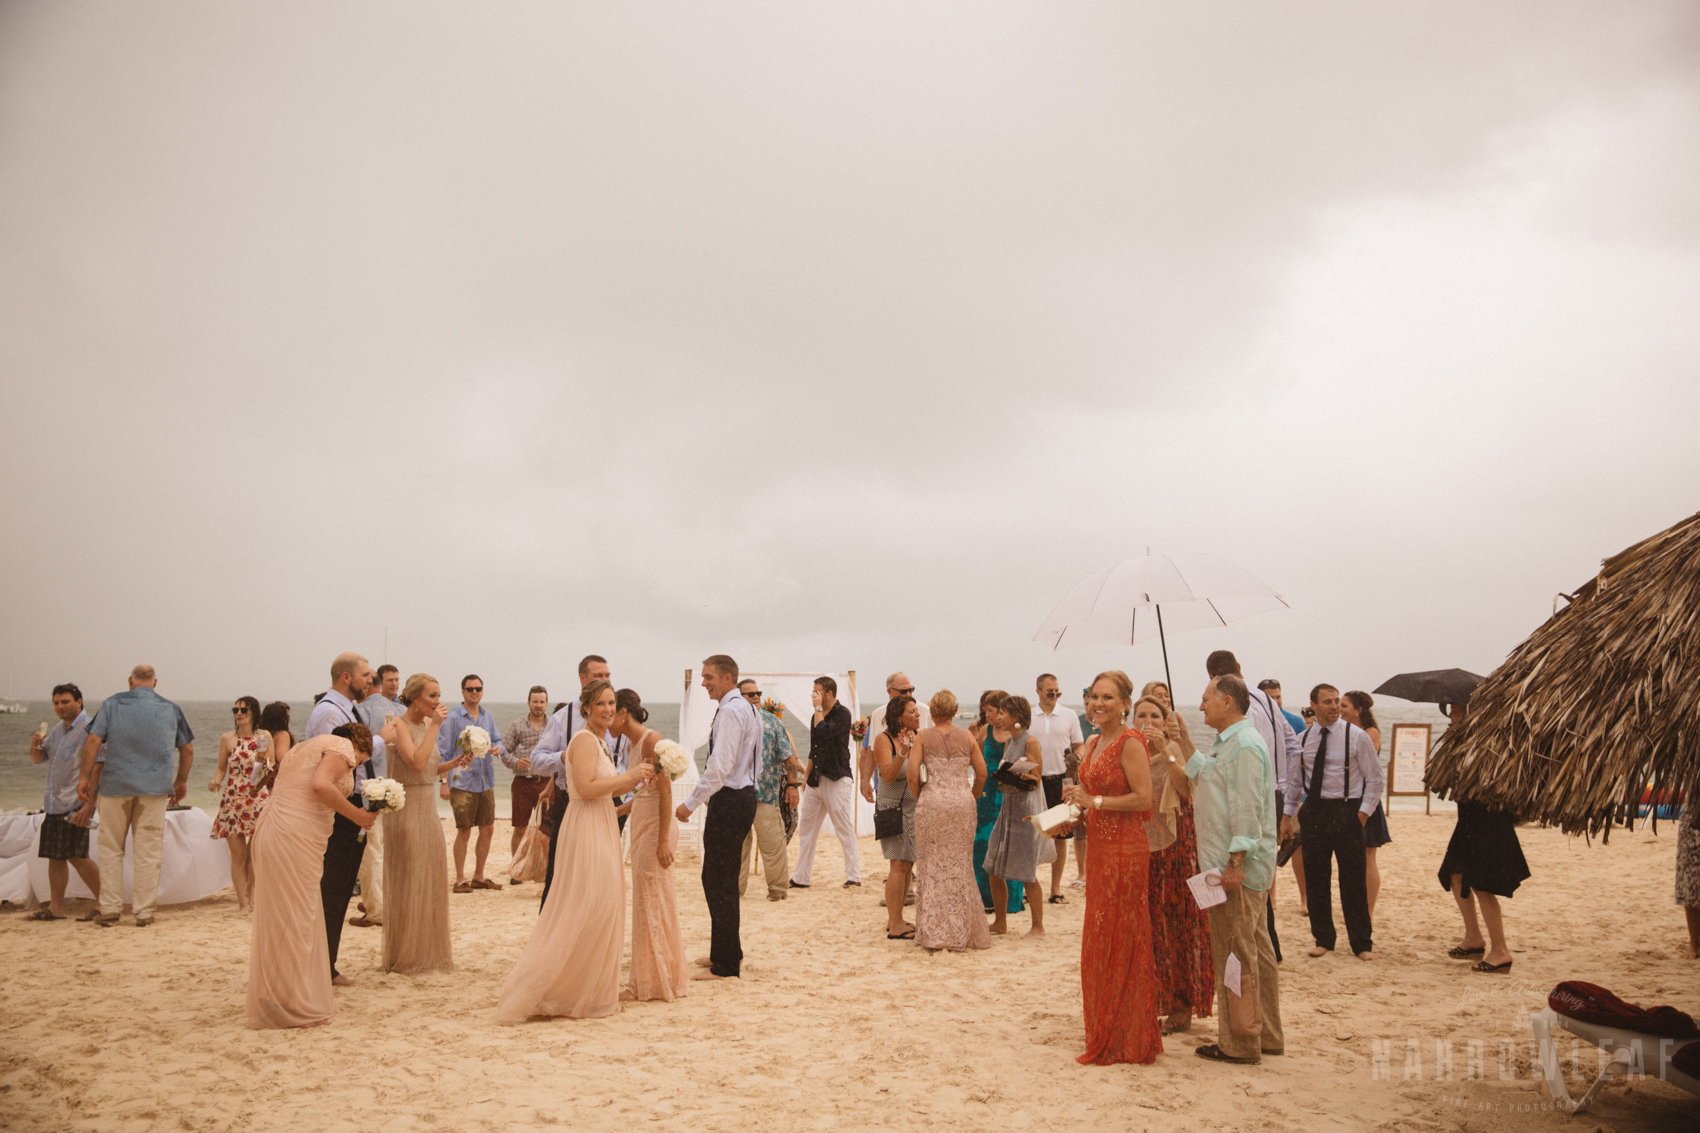 punta-cana-dominican-republic-destination-wedding-beach-ceremony-6936.jpg